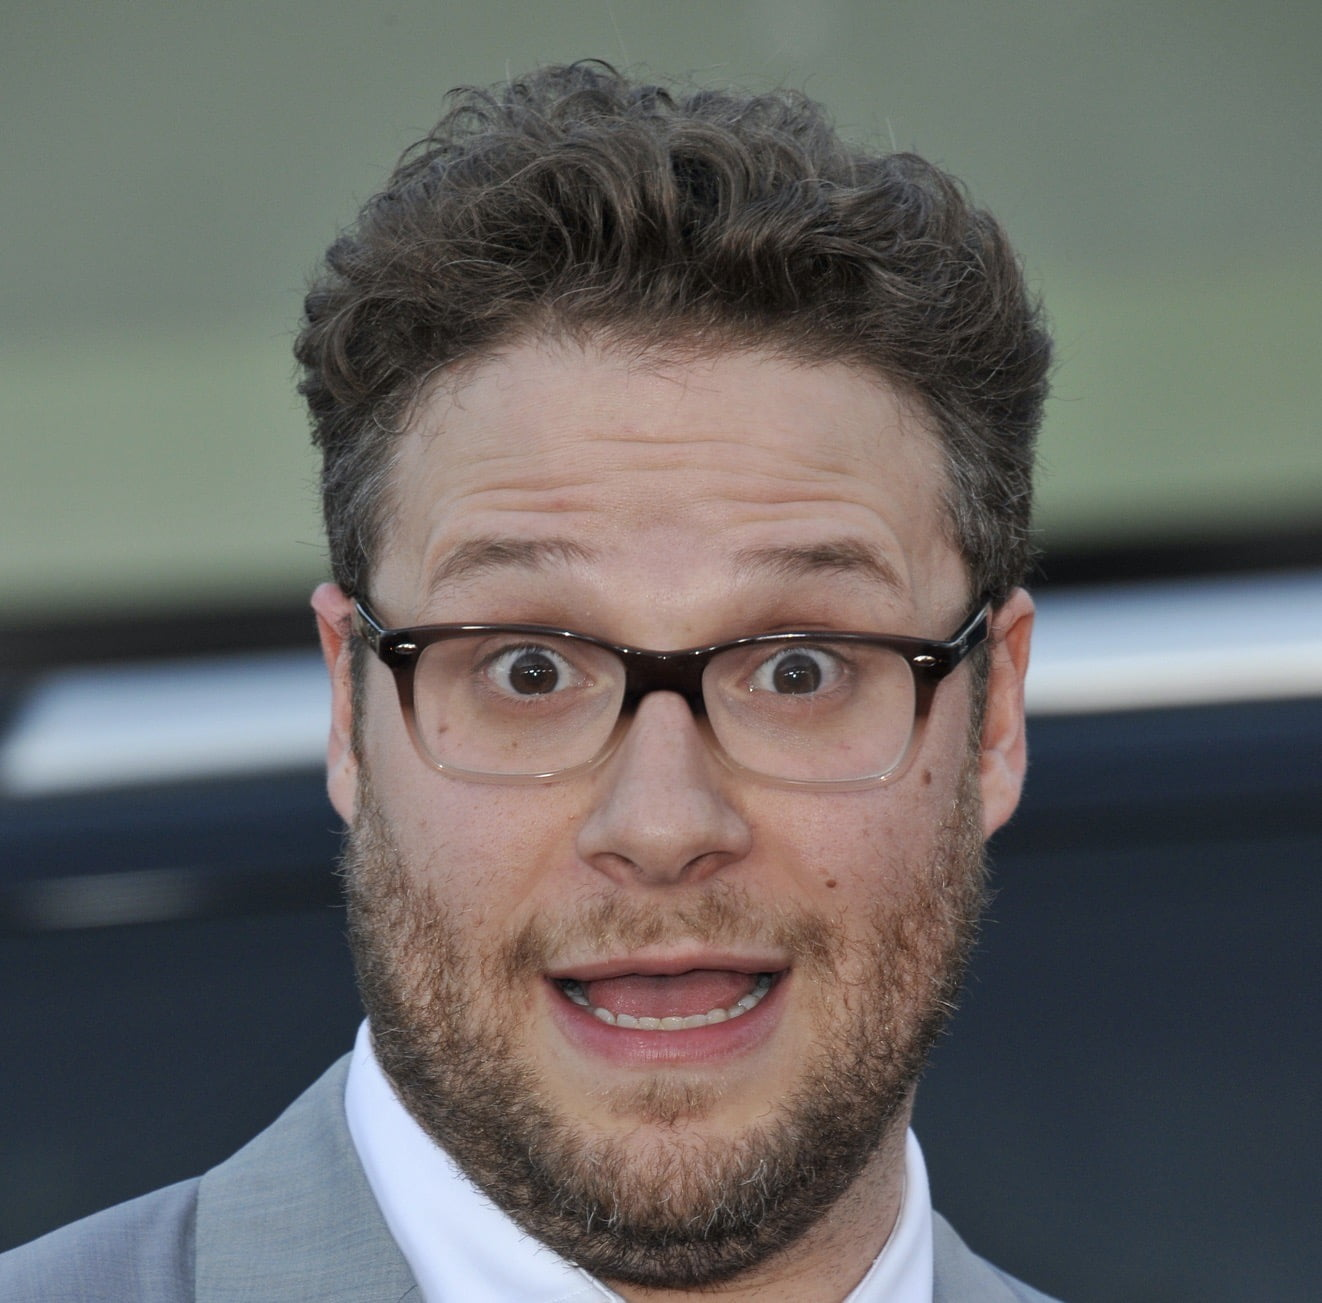 Seth Rogen Study shows Weed Damages Capacity for Generational Preservation